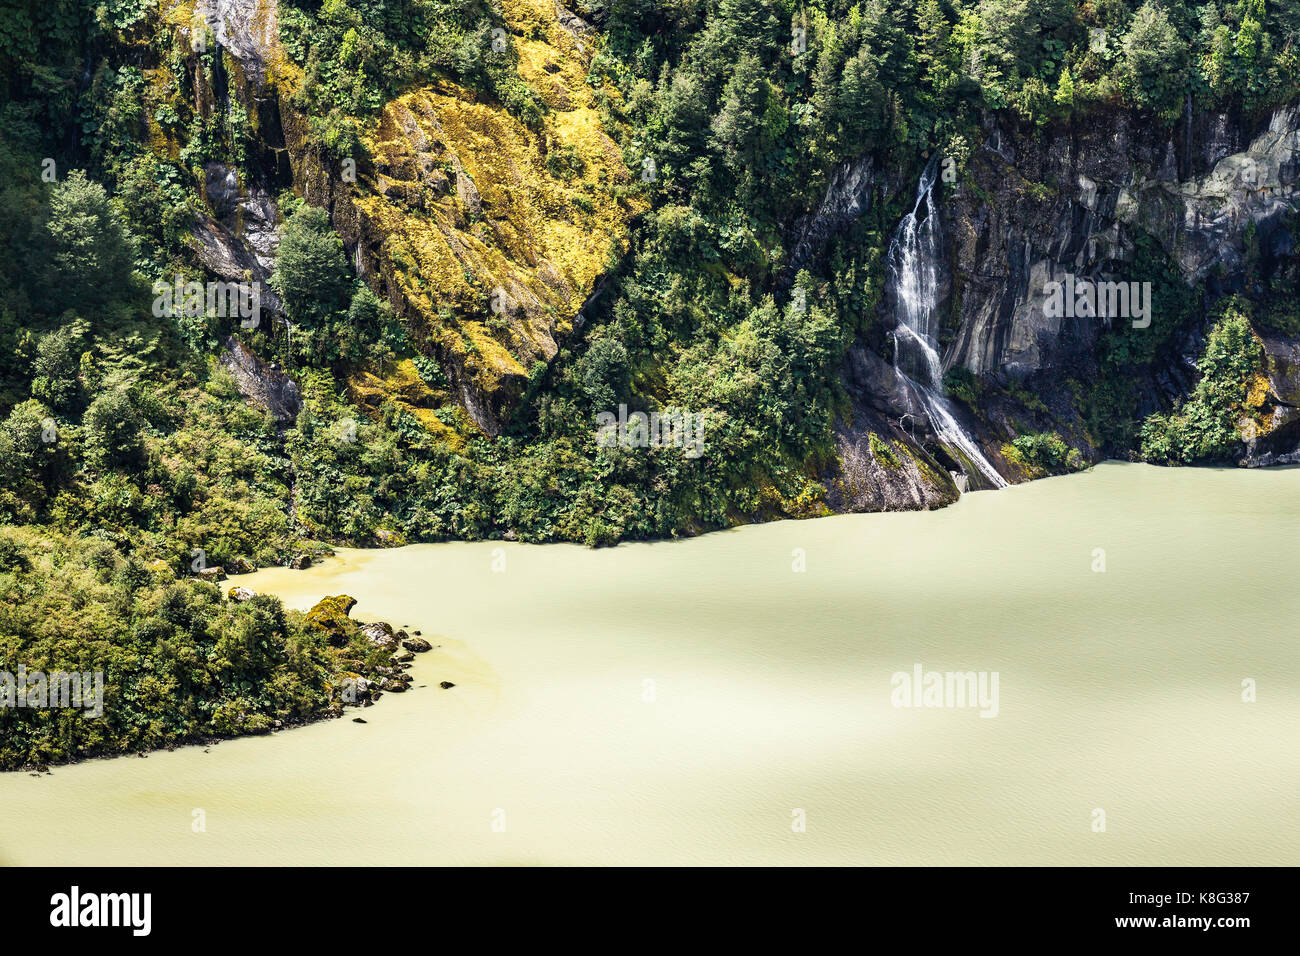 Detail of rocky cliffs and Lake Verde, Queulat National Park, Chile - Stock Image